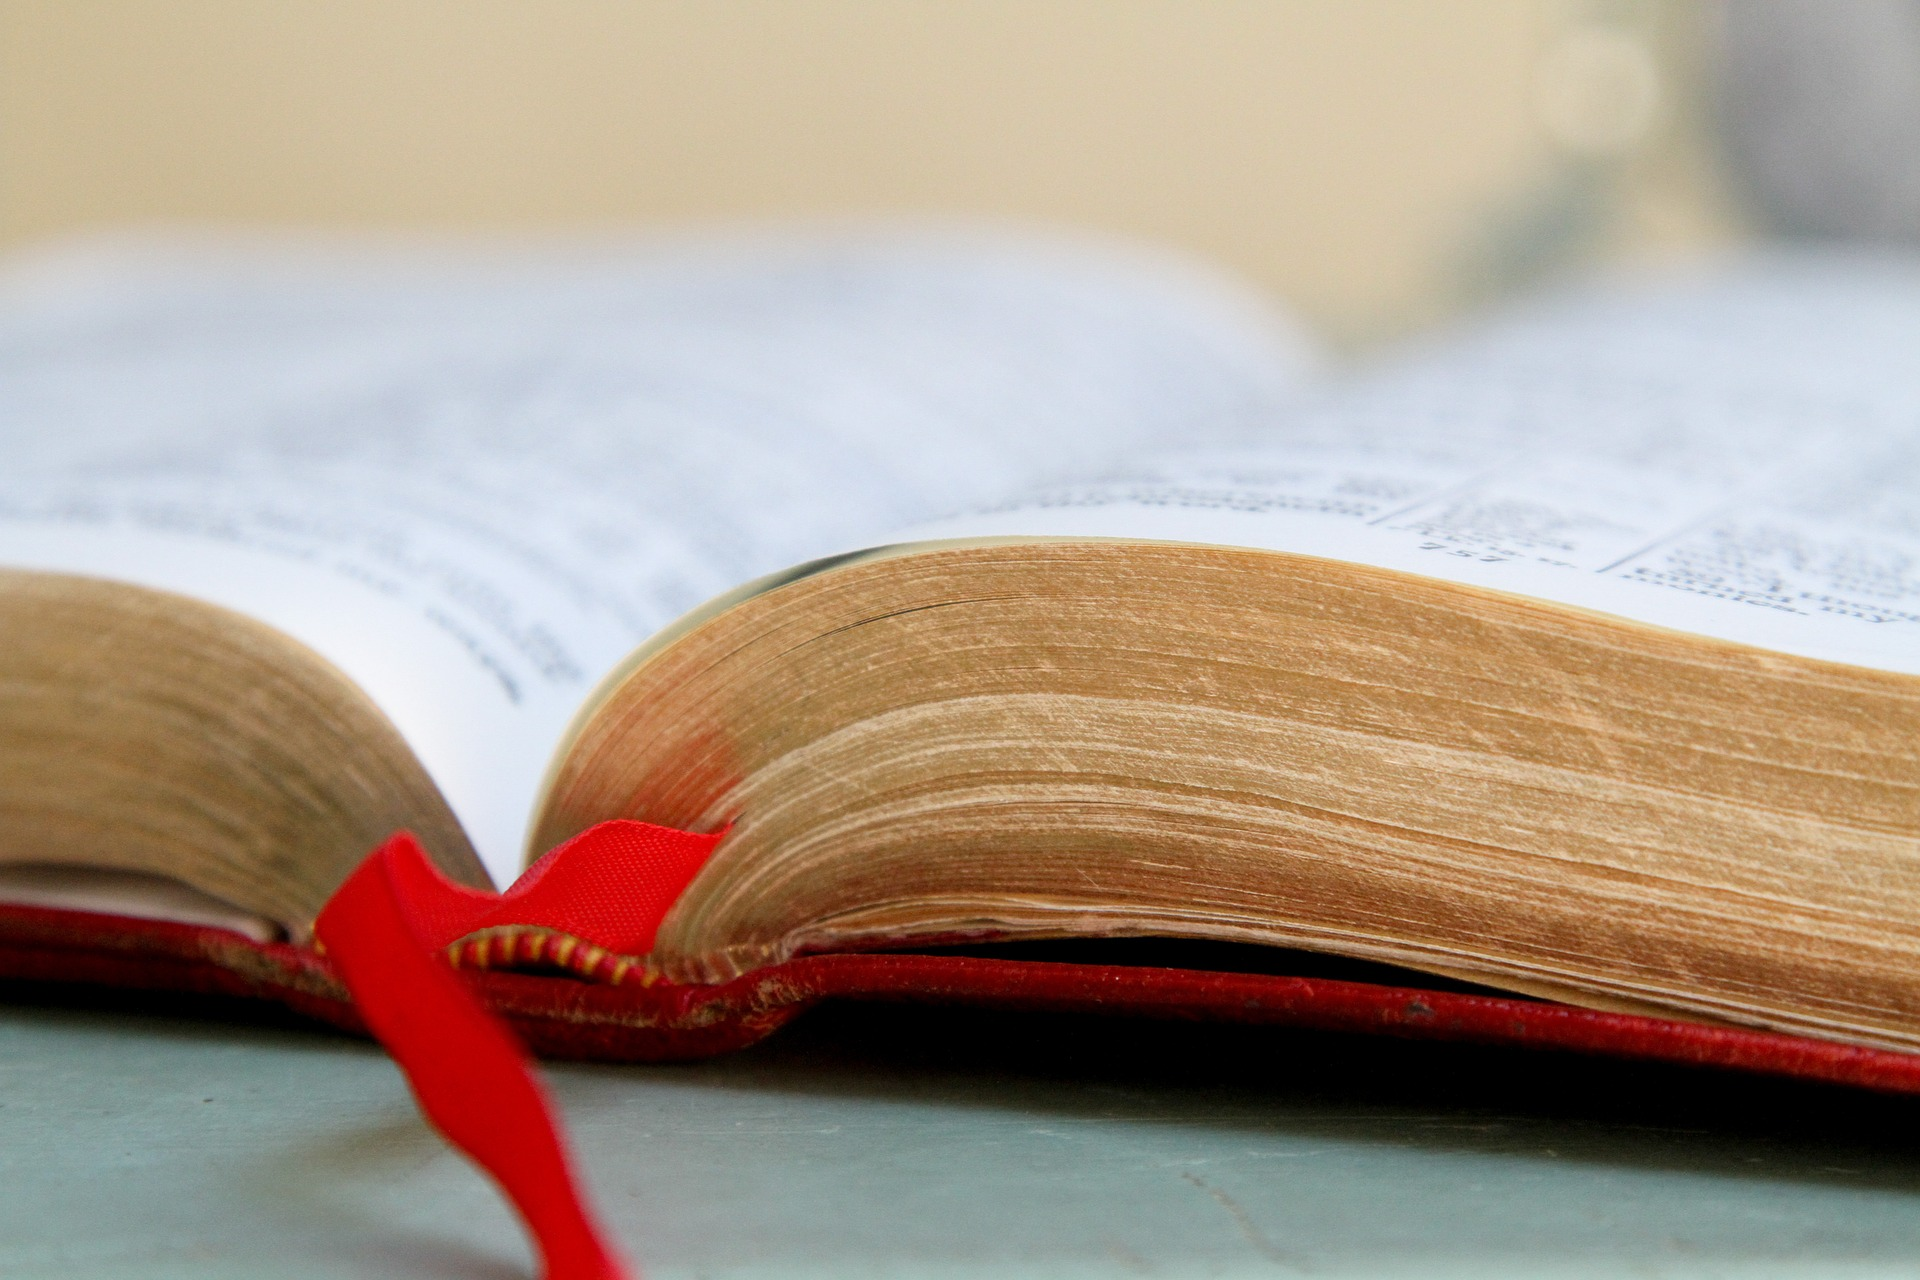 Know the Bible. Grow in Your Faith.